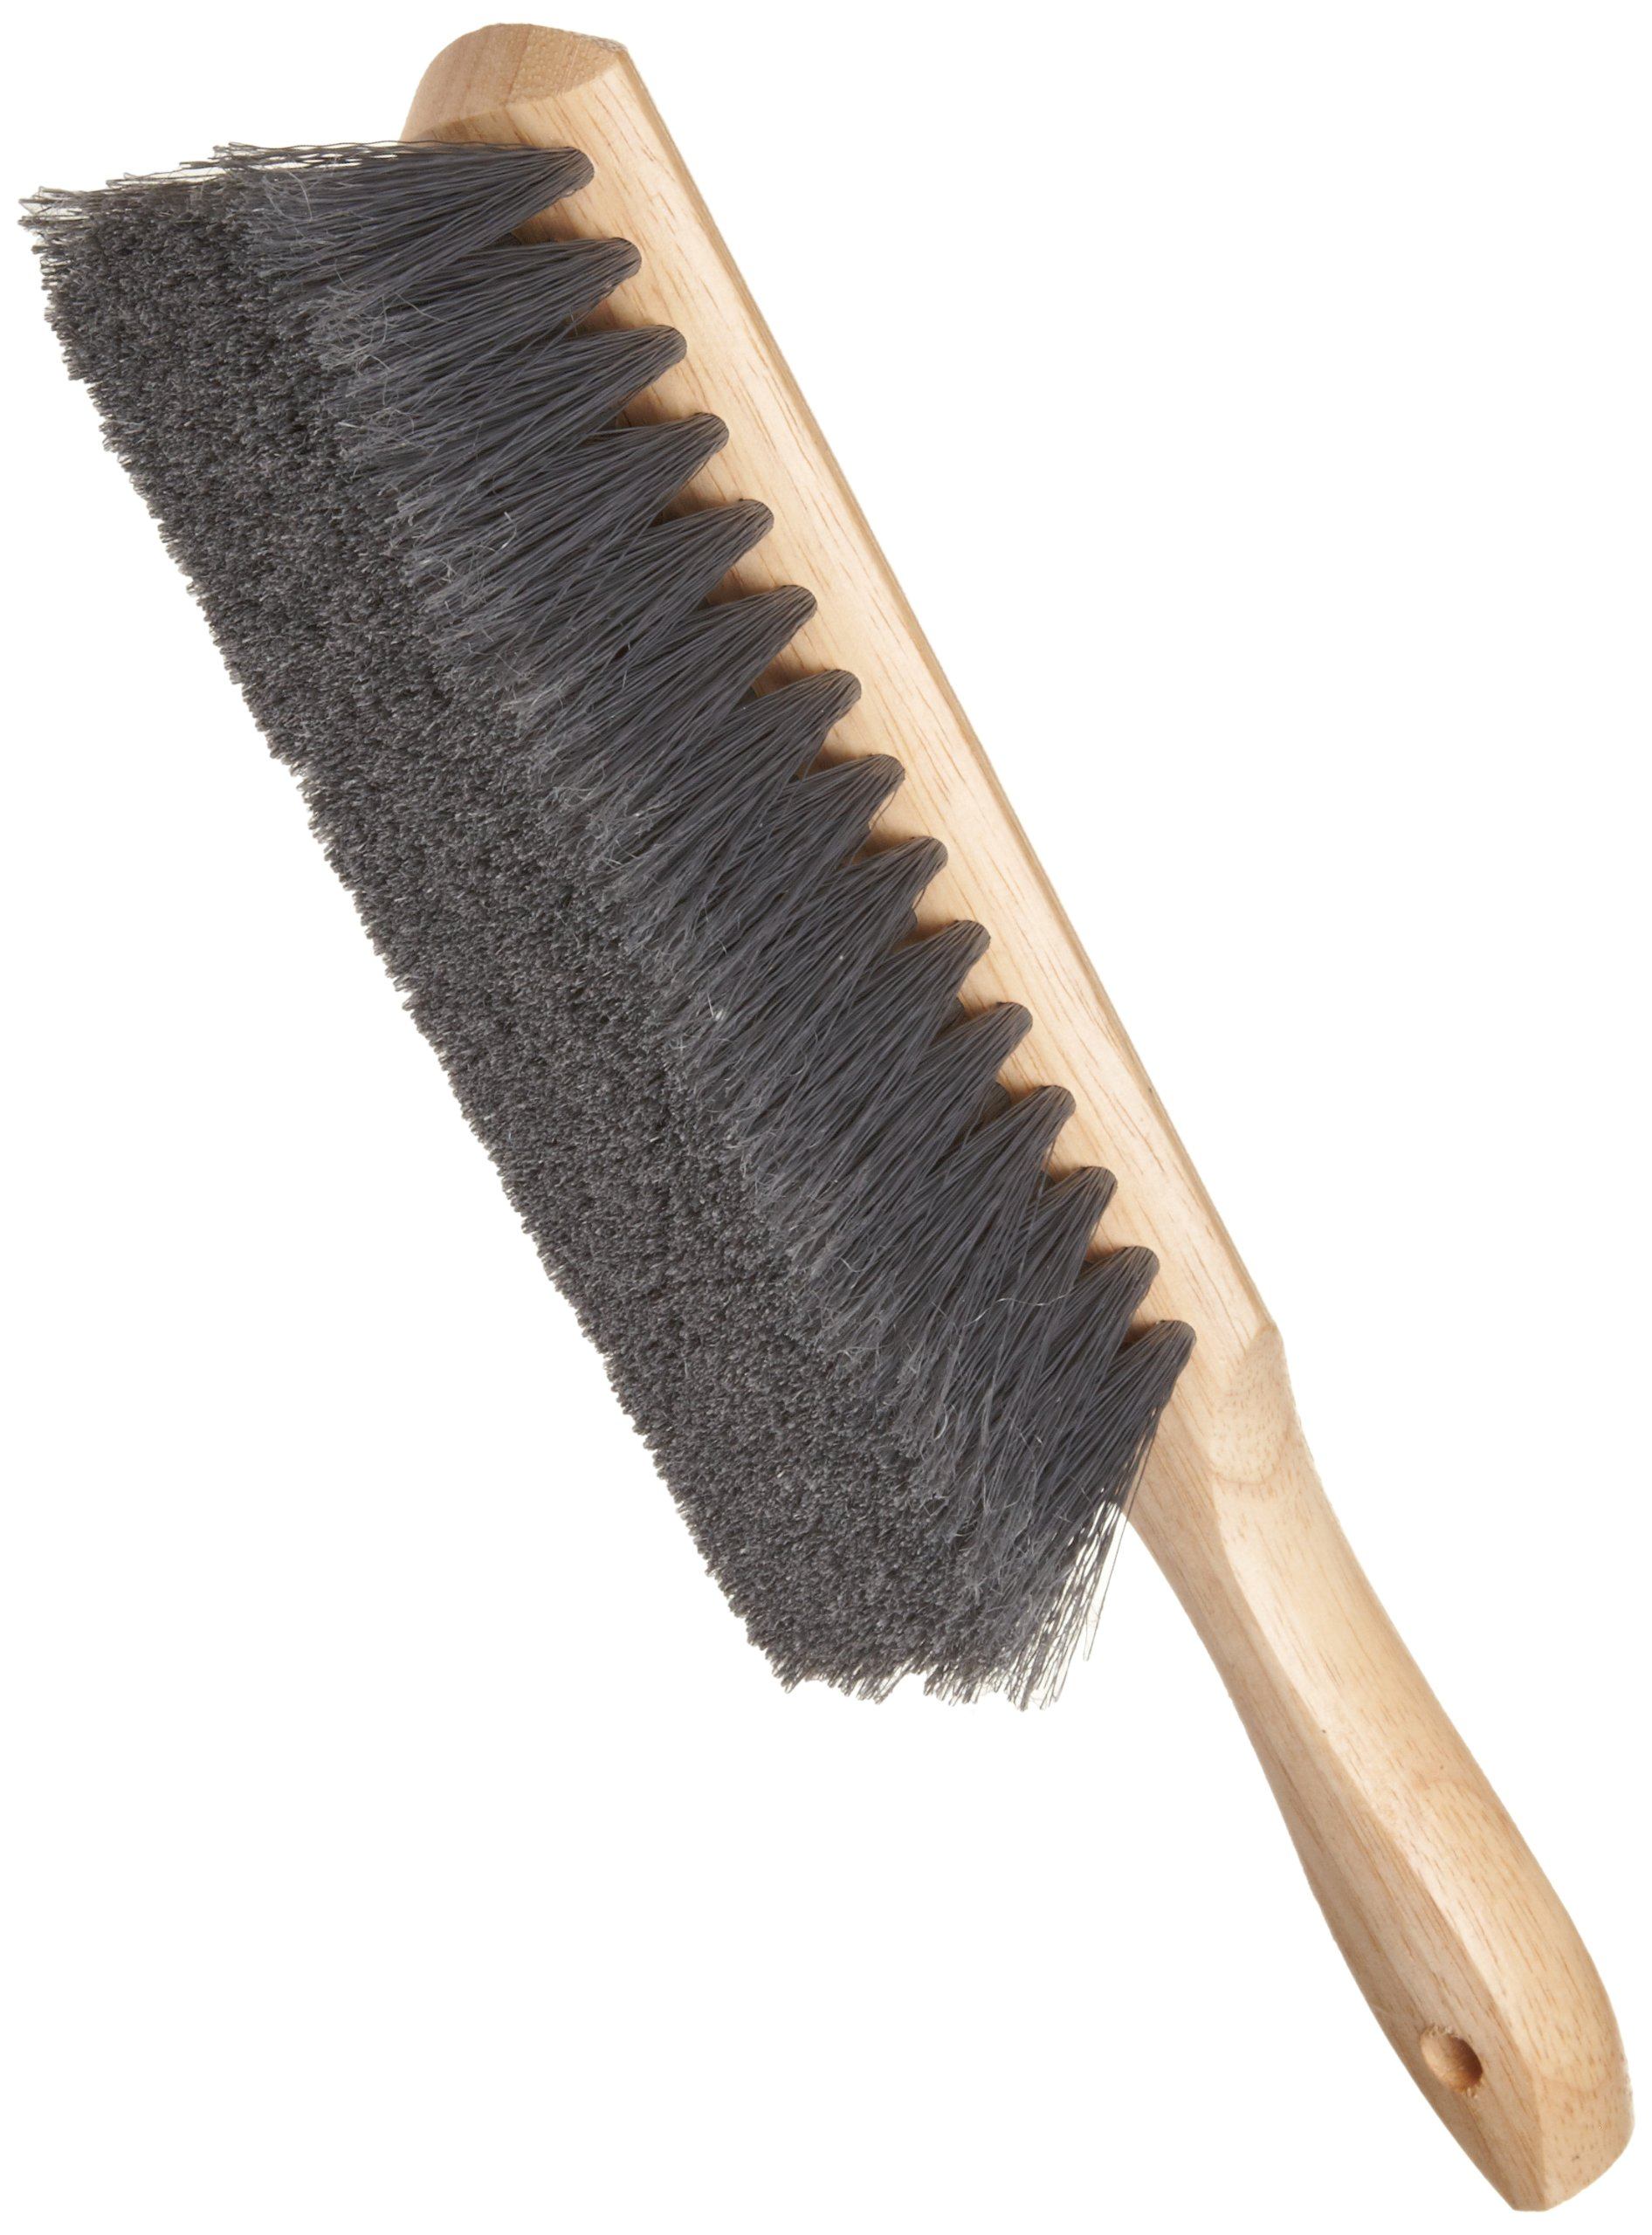 Weiler 44354 Counter Duster, Flagged Silver Polystyrene Fill, Wood Block, 8'' Brush Length